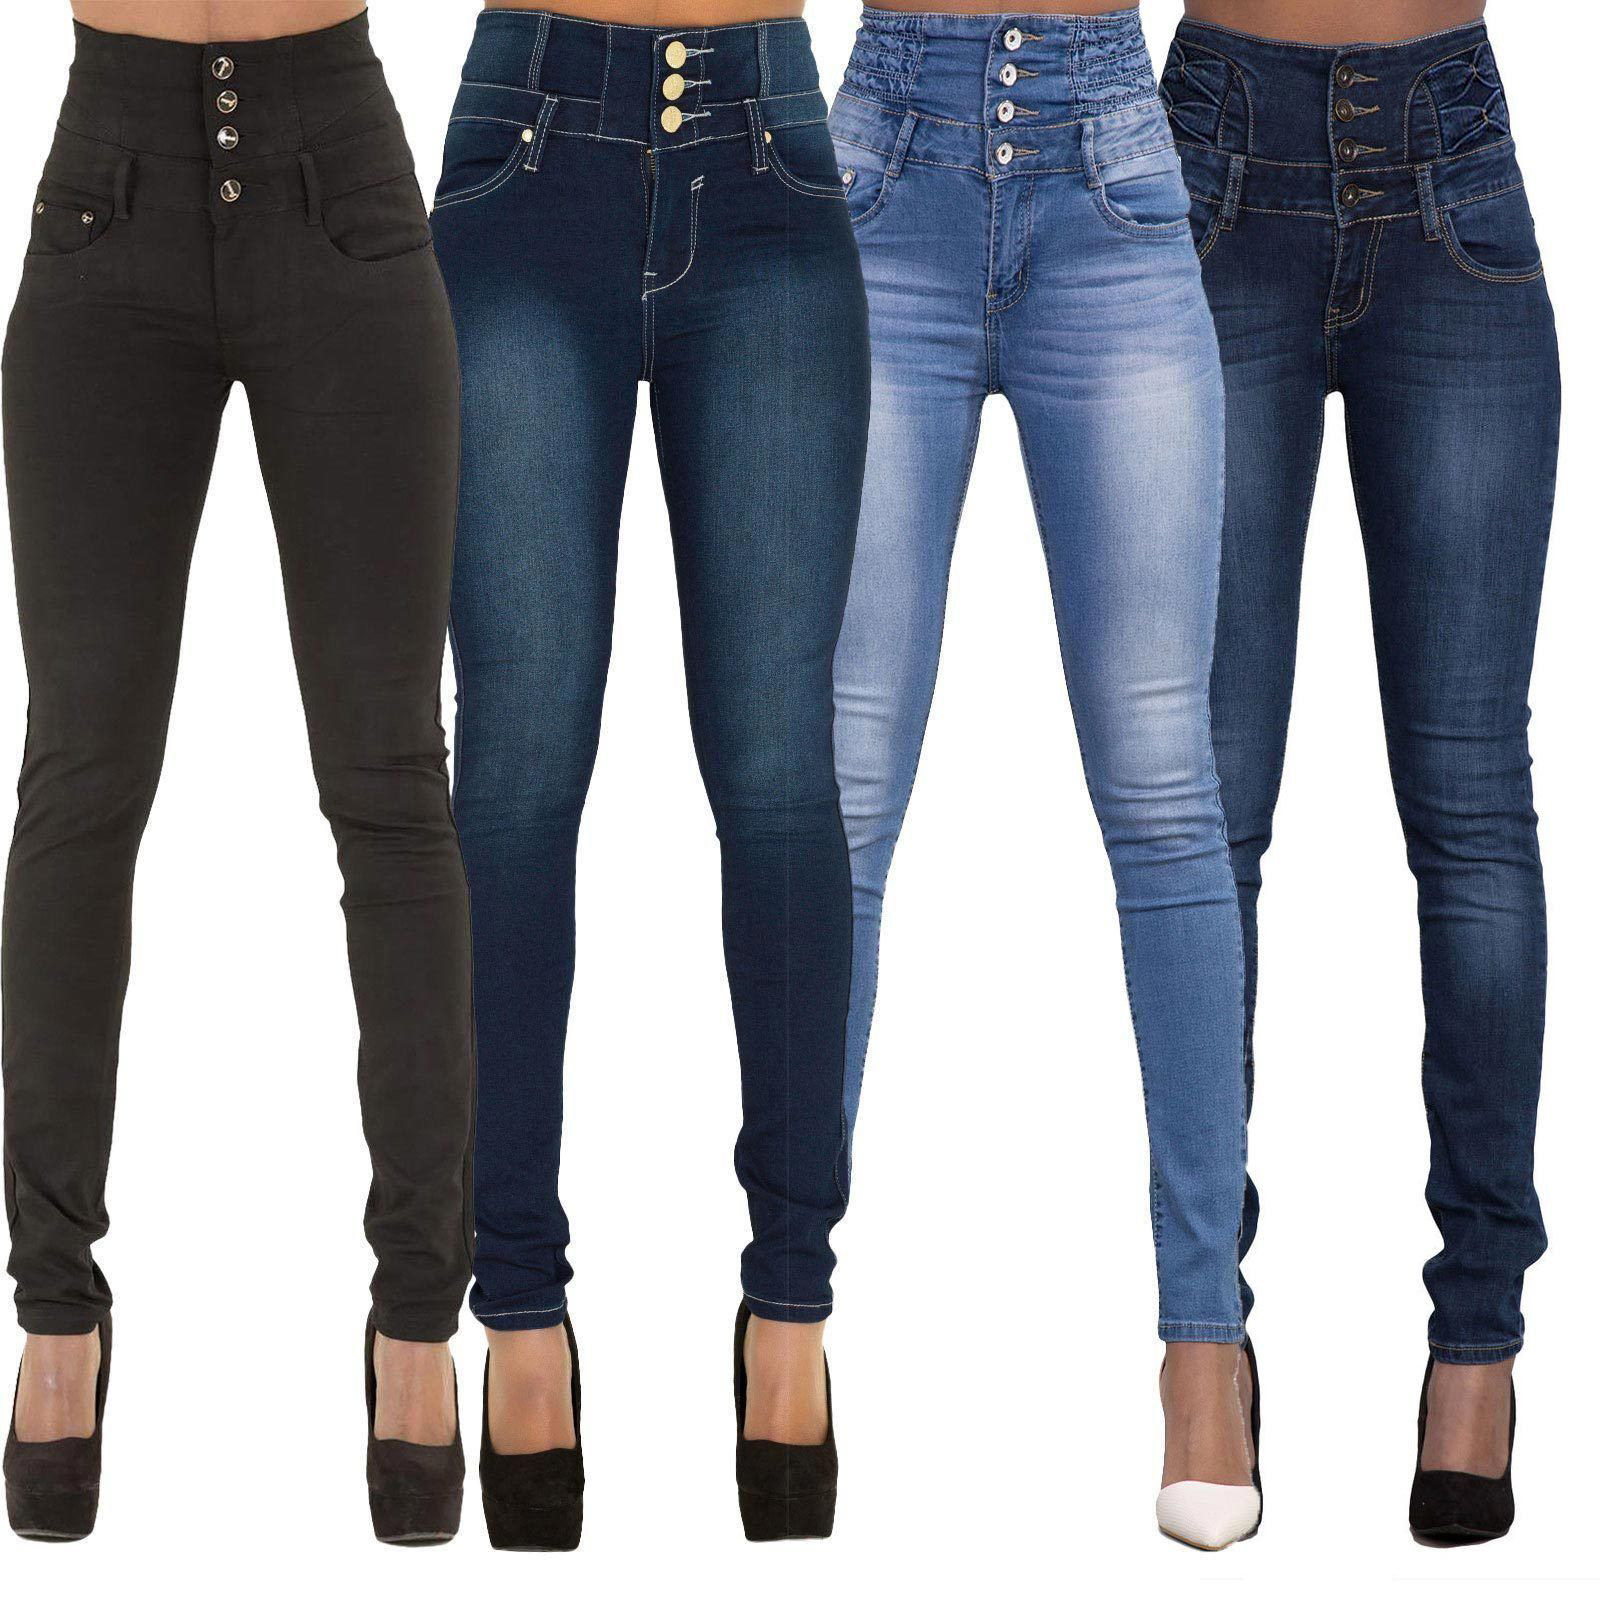 Ebay Hot Selling WISH Autumn And Winter Women's Sexy High-waisted Slim Fit Stretch Plus-sized Skinny Jeans